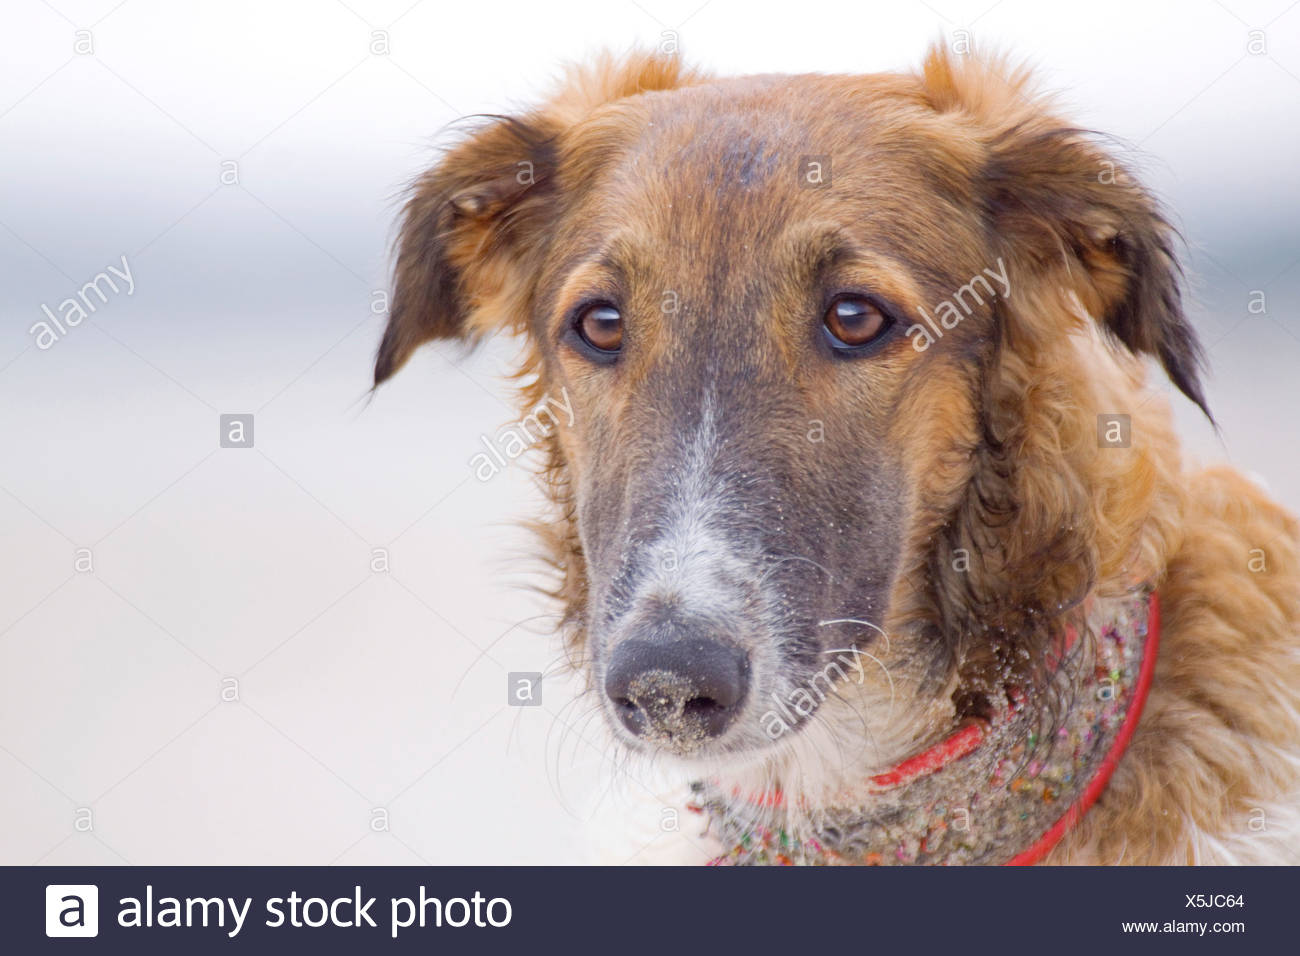 Barzoi dog portrait Stock Photo